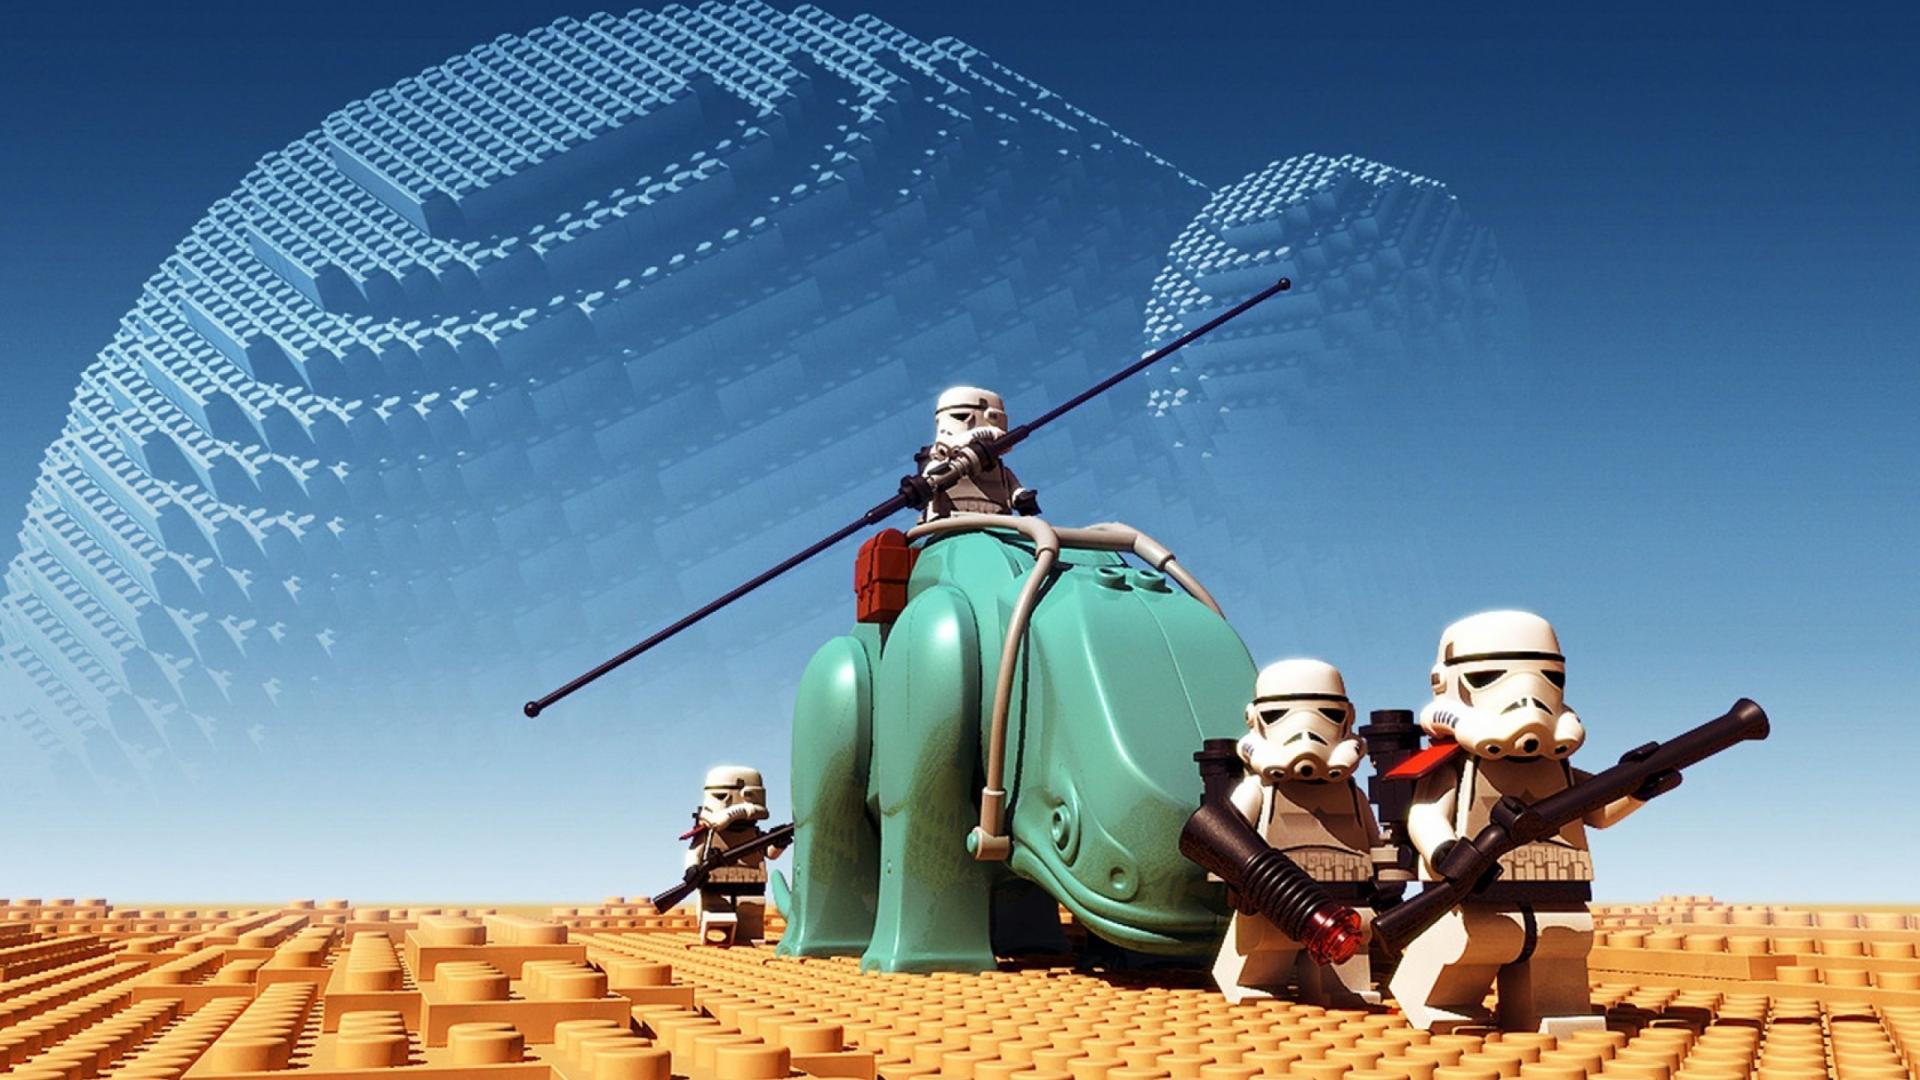 Cool Lego Star Wars in desert Lego Wallpaper HD 430 Backgrounds For Dekstop, this wallpaper you can use as the background/wallpaper of computer dekstop, ...